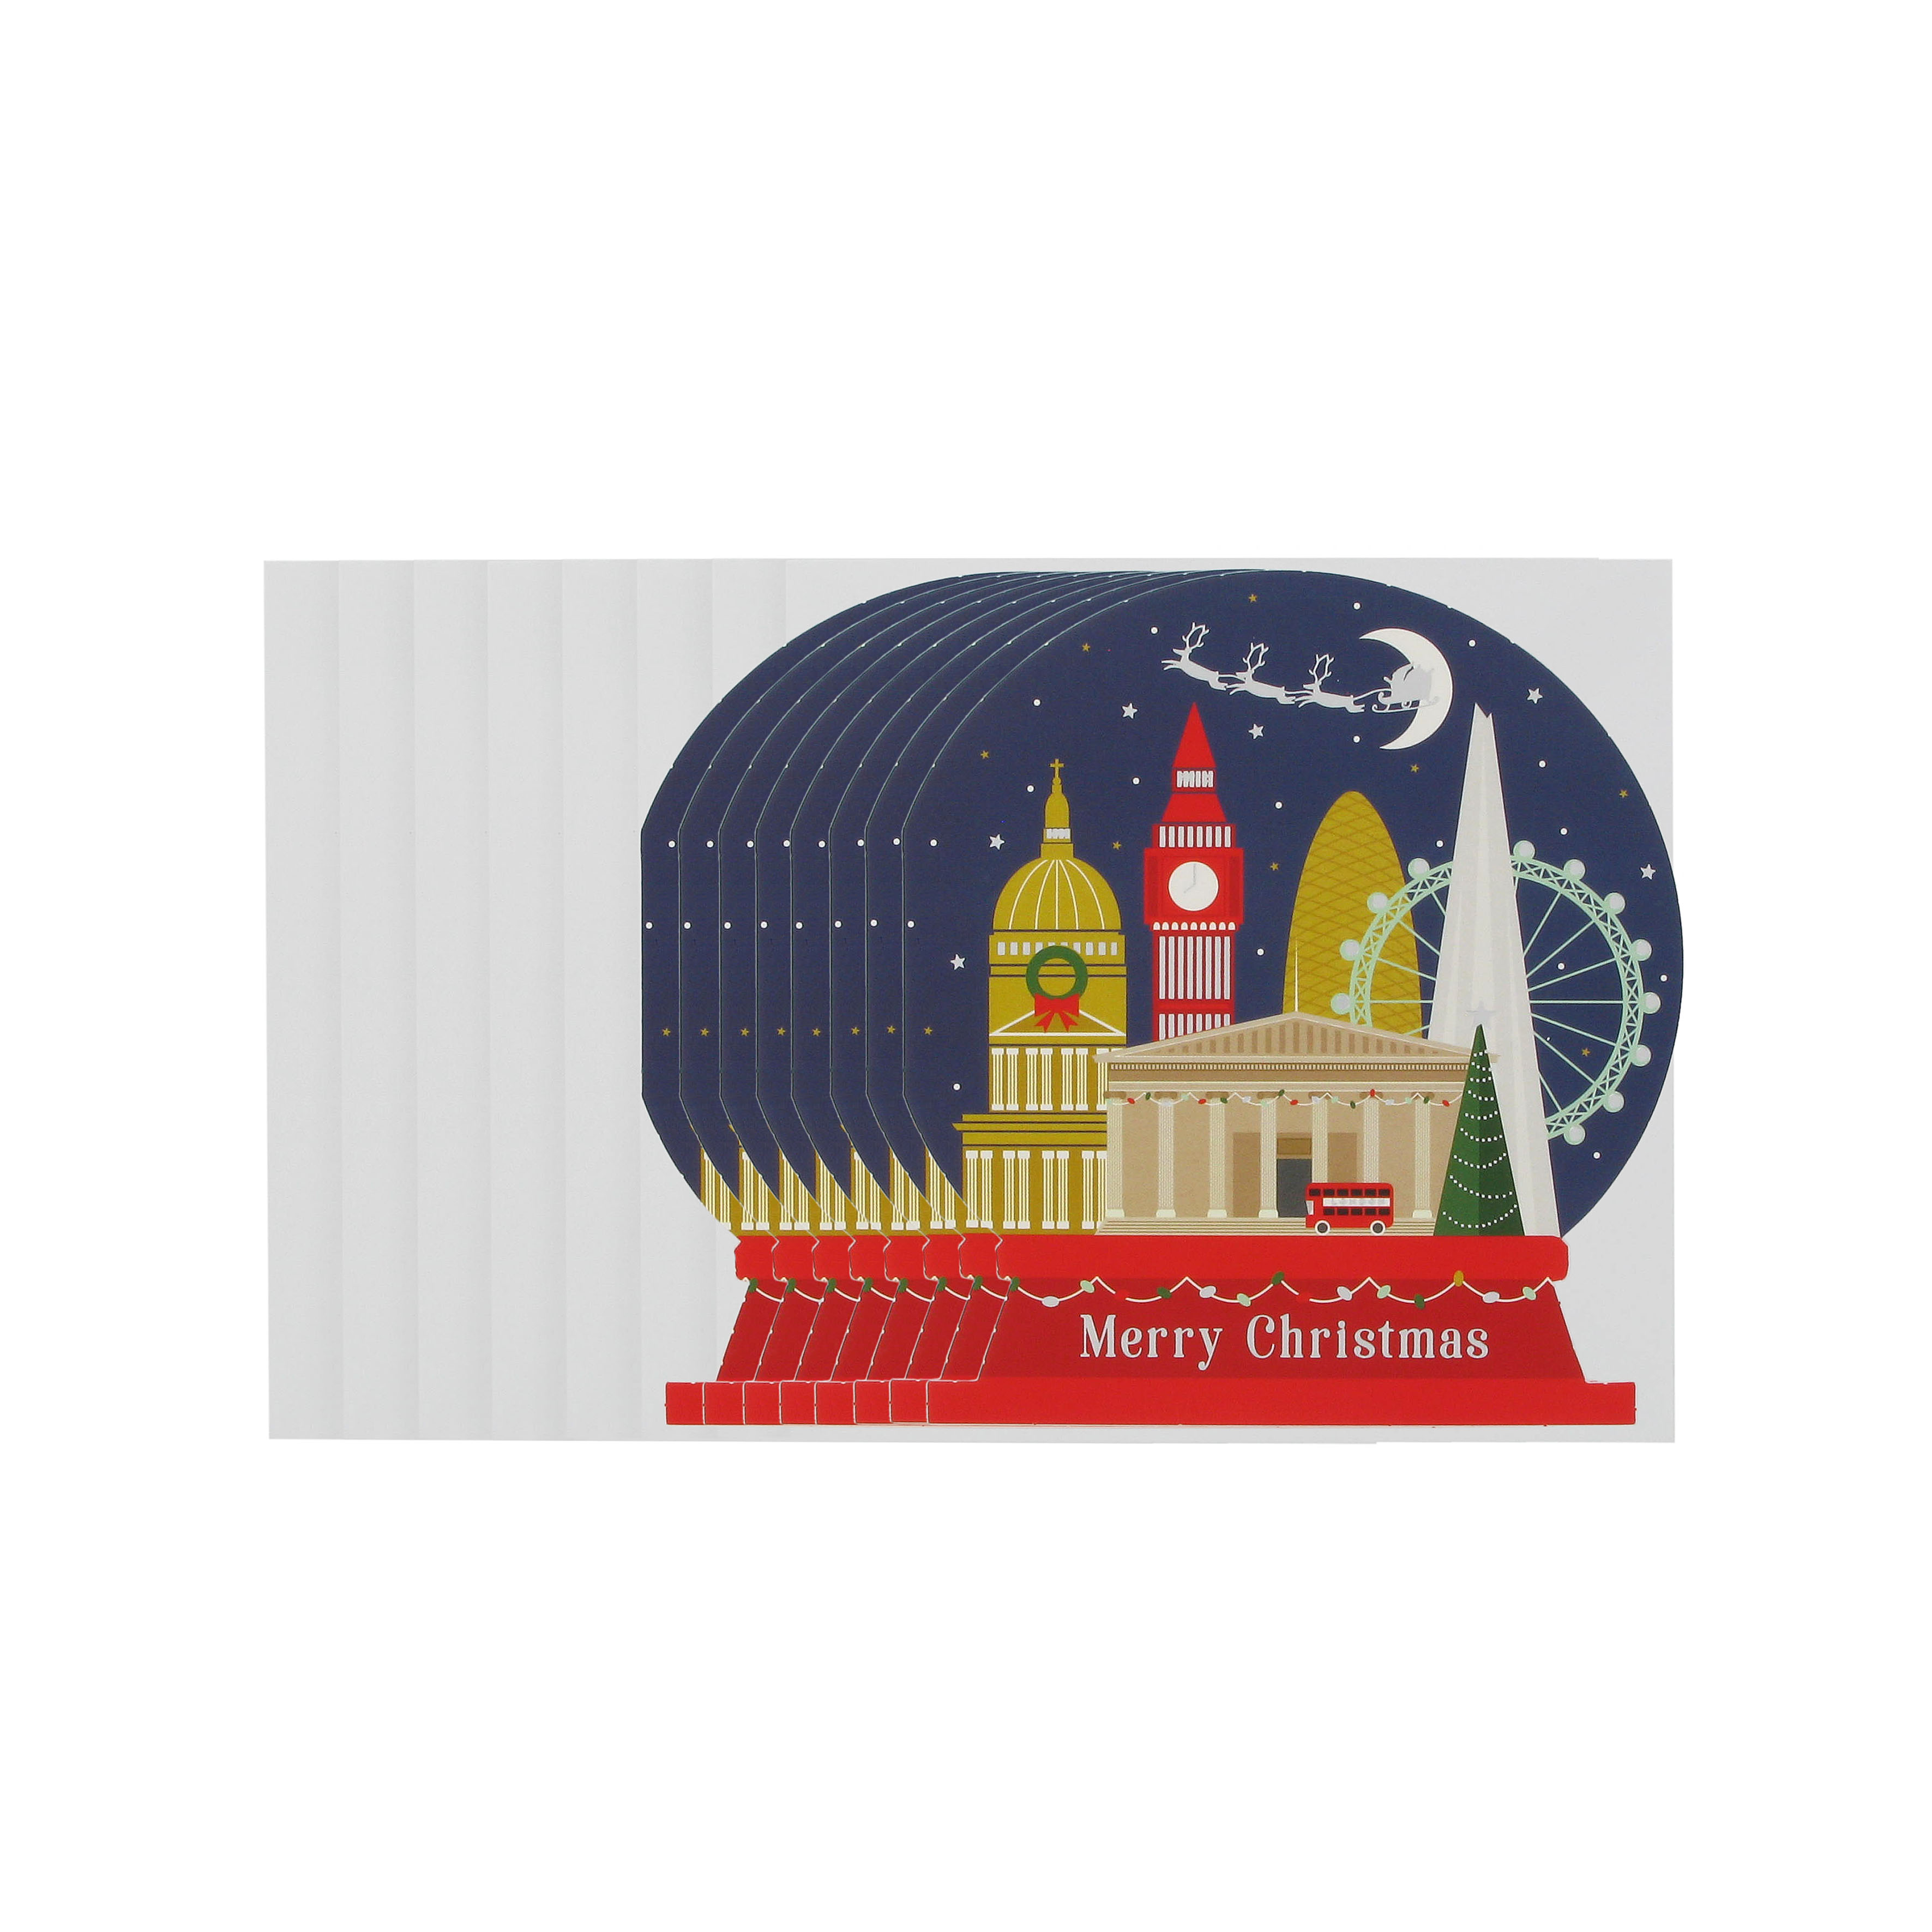 Snowglobe Christmas cards